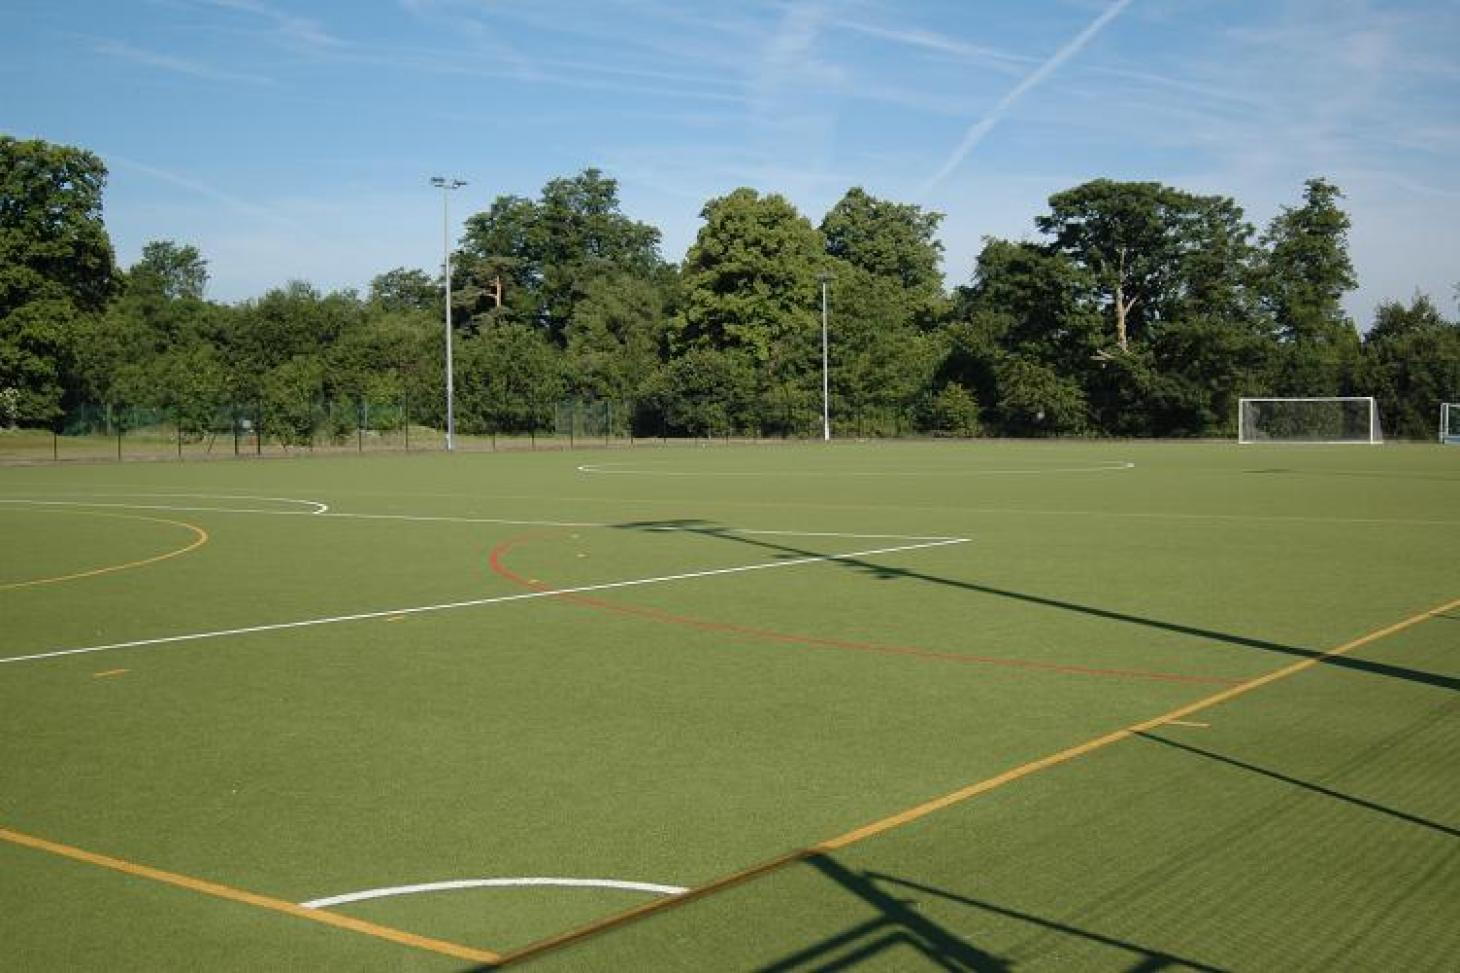 Croydon Sports Club Outdoor | Astroturf hockey pitch